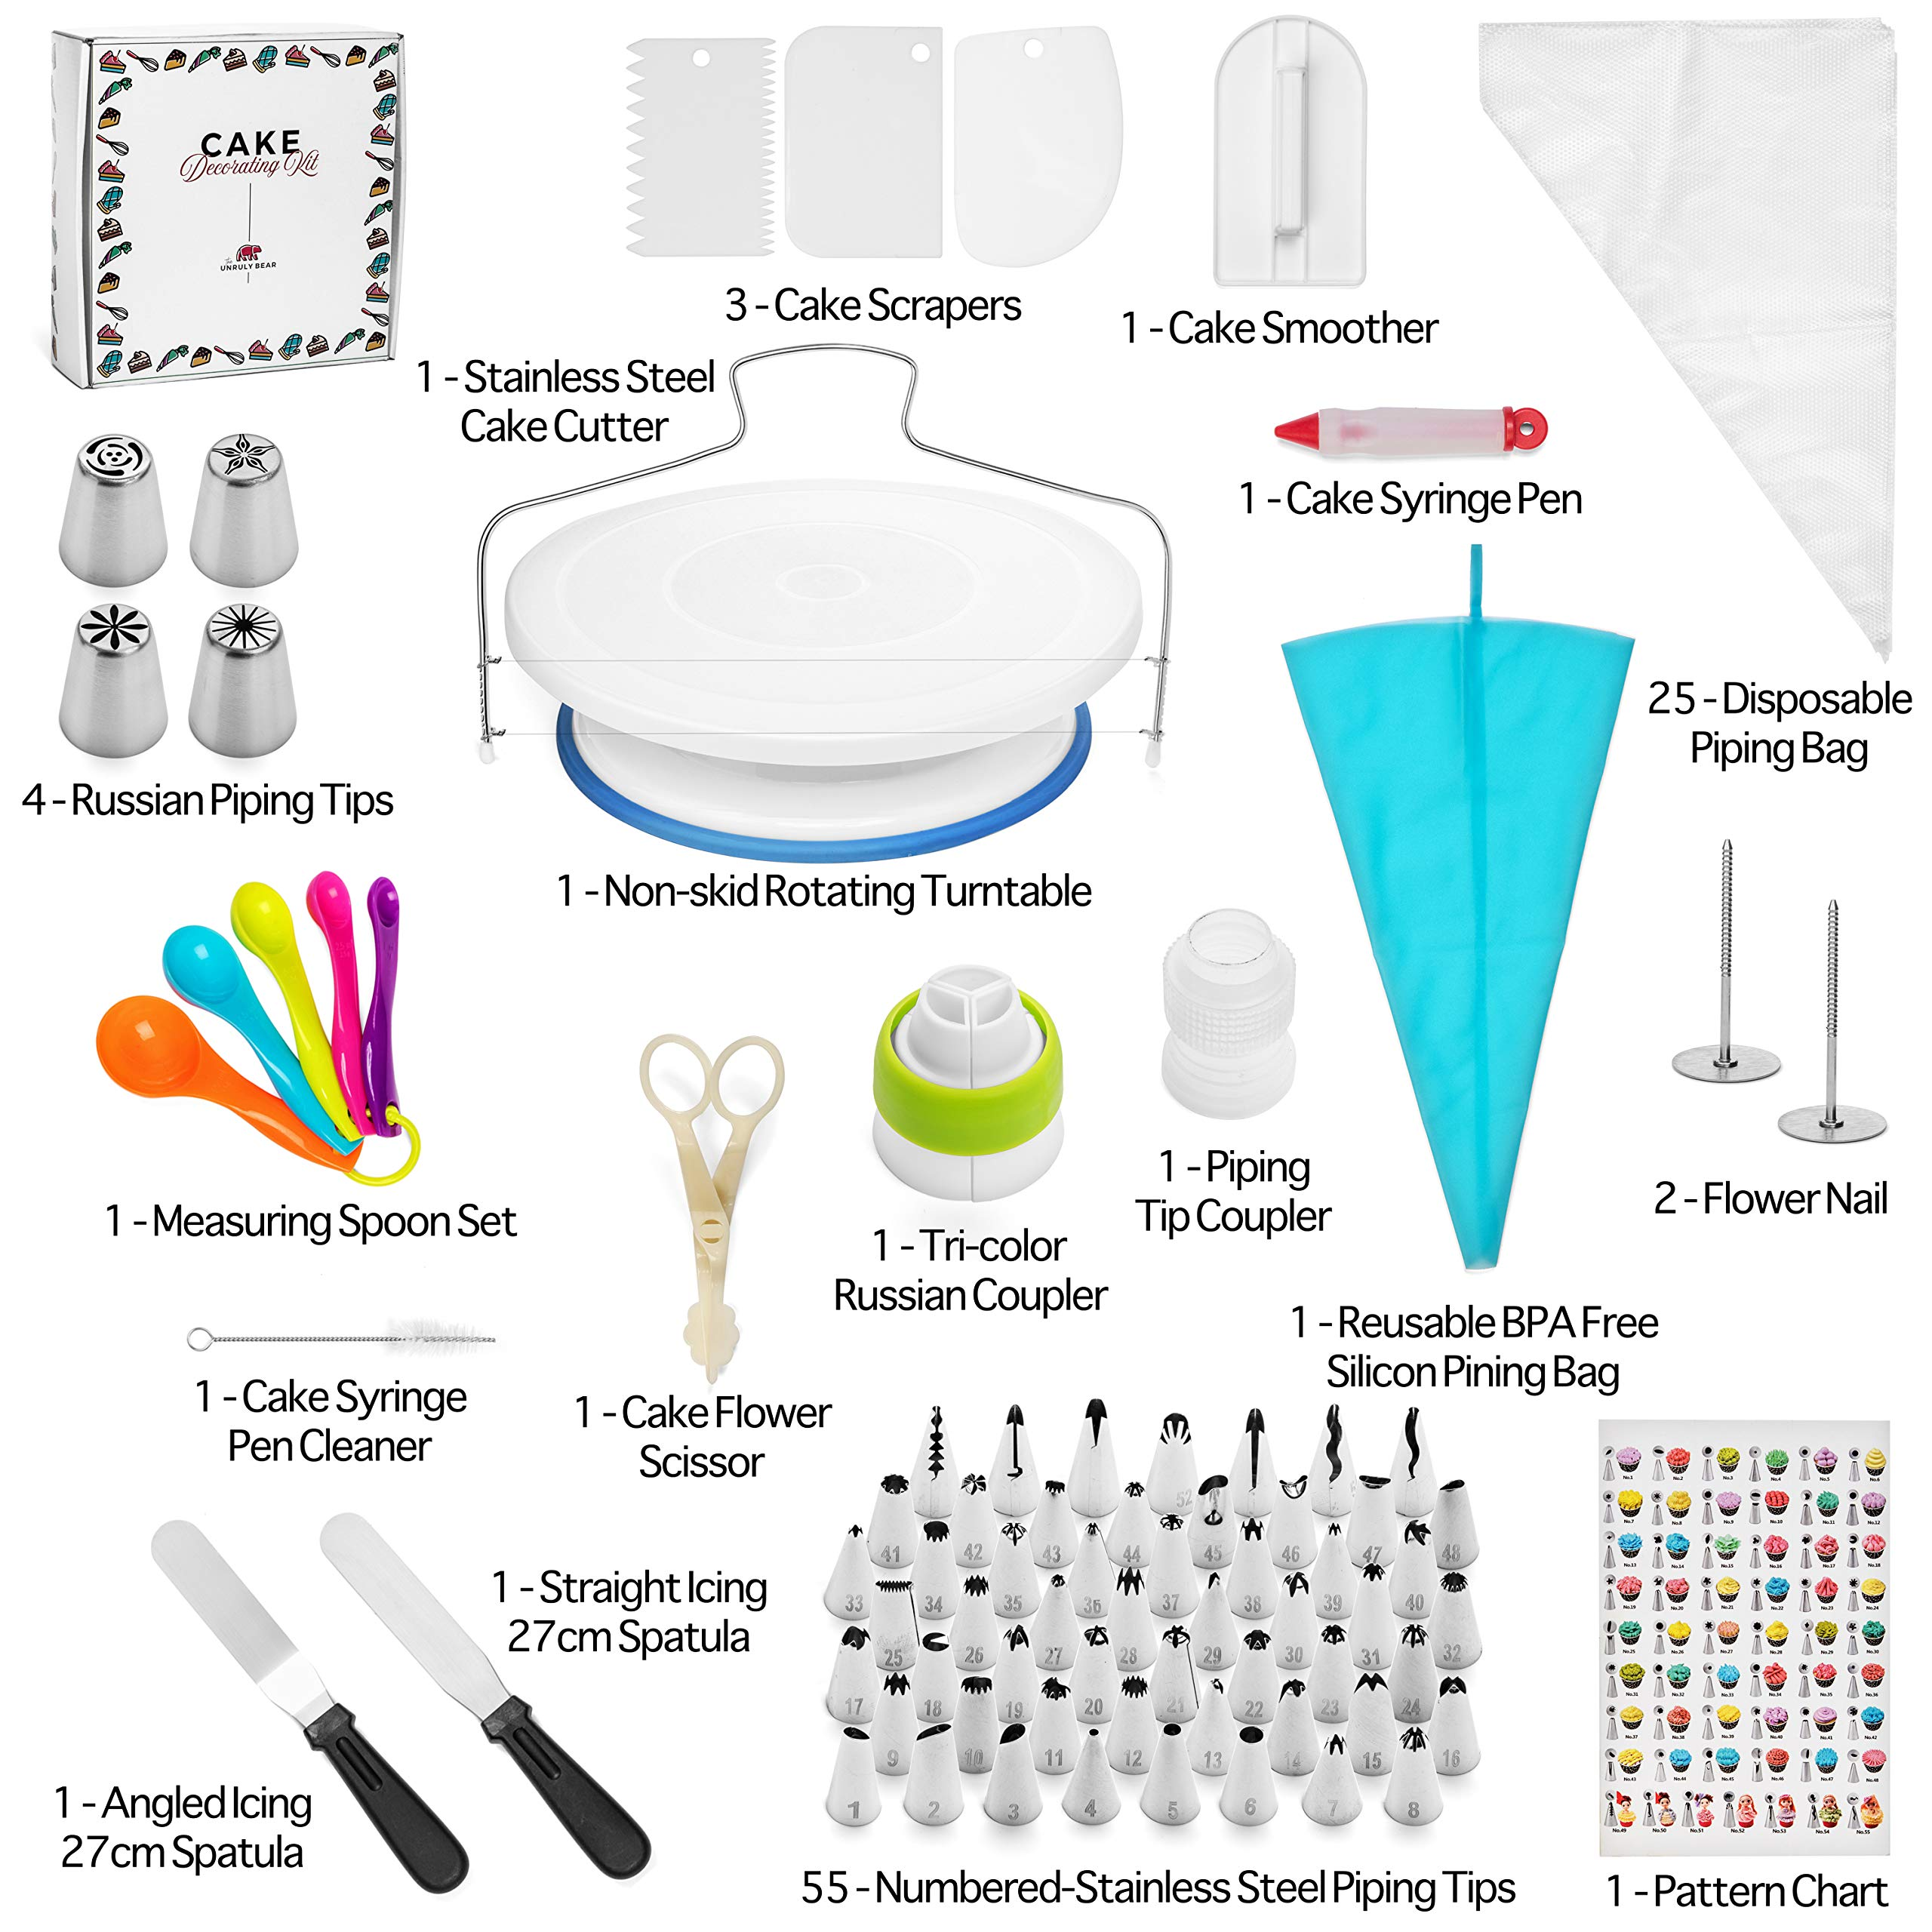 Cake Decorating Supplies Kit by The Unruly Bear - 100+ pc Baking tools set includes turntable stand, piping bags, stainless numbered Icing and Russian tips with coupler, measuring spoons, and MORE! by The Unruly Bear (Image #2)